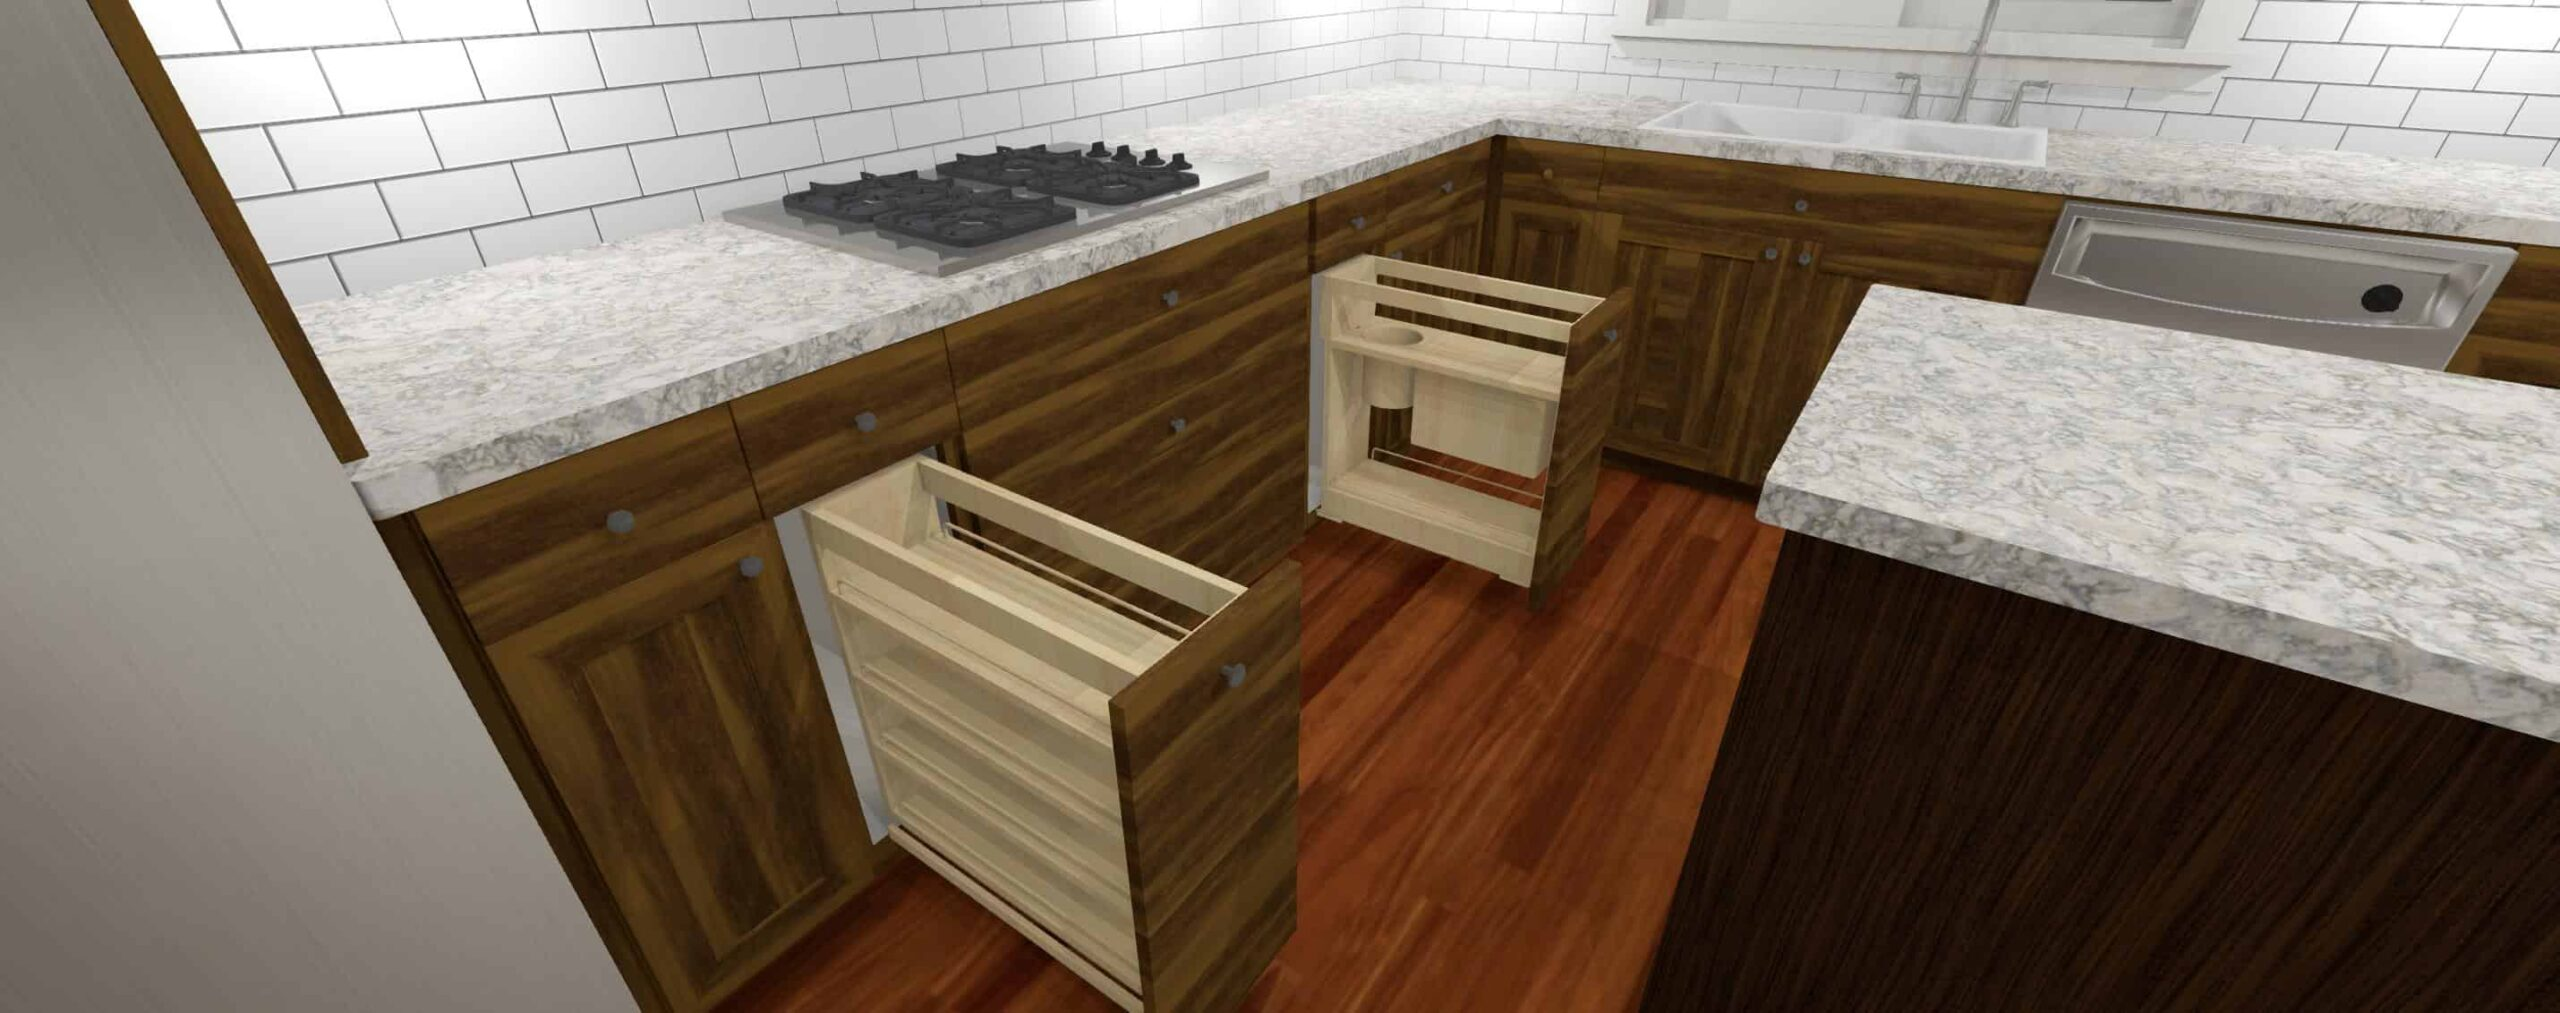 3D Model of a cooktop cabinets - Designers Northwest